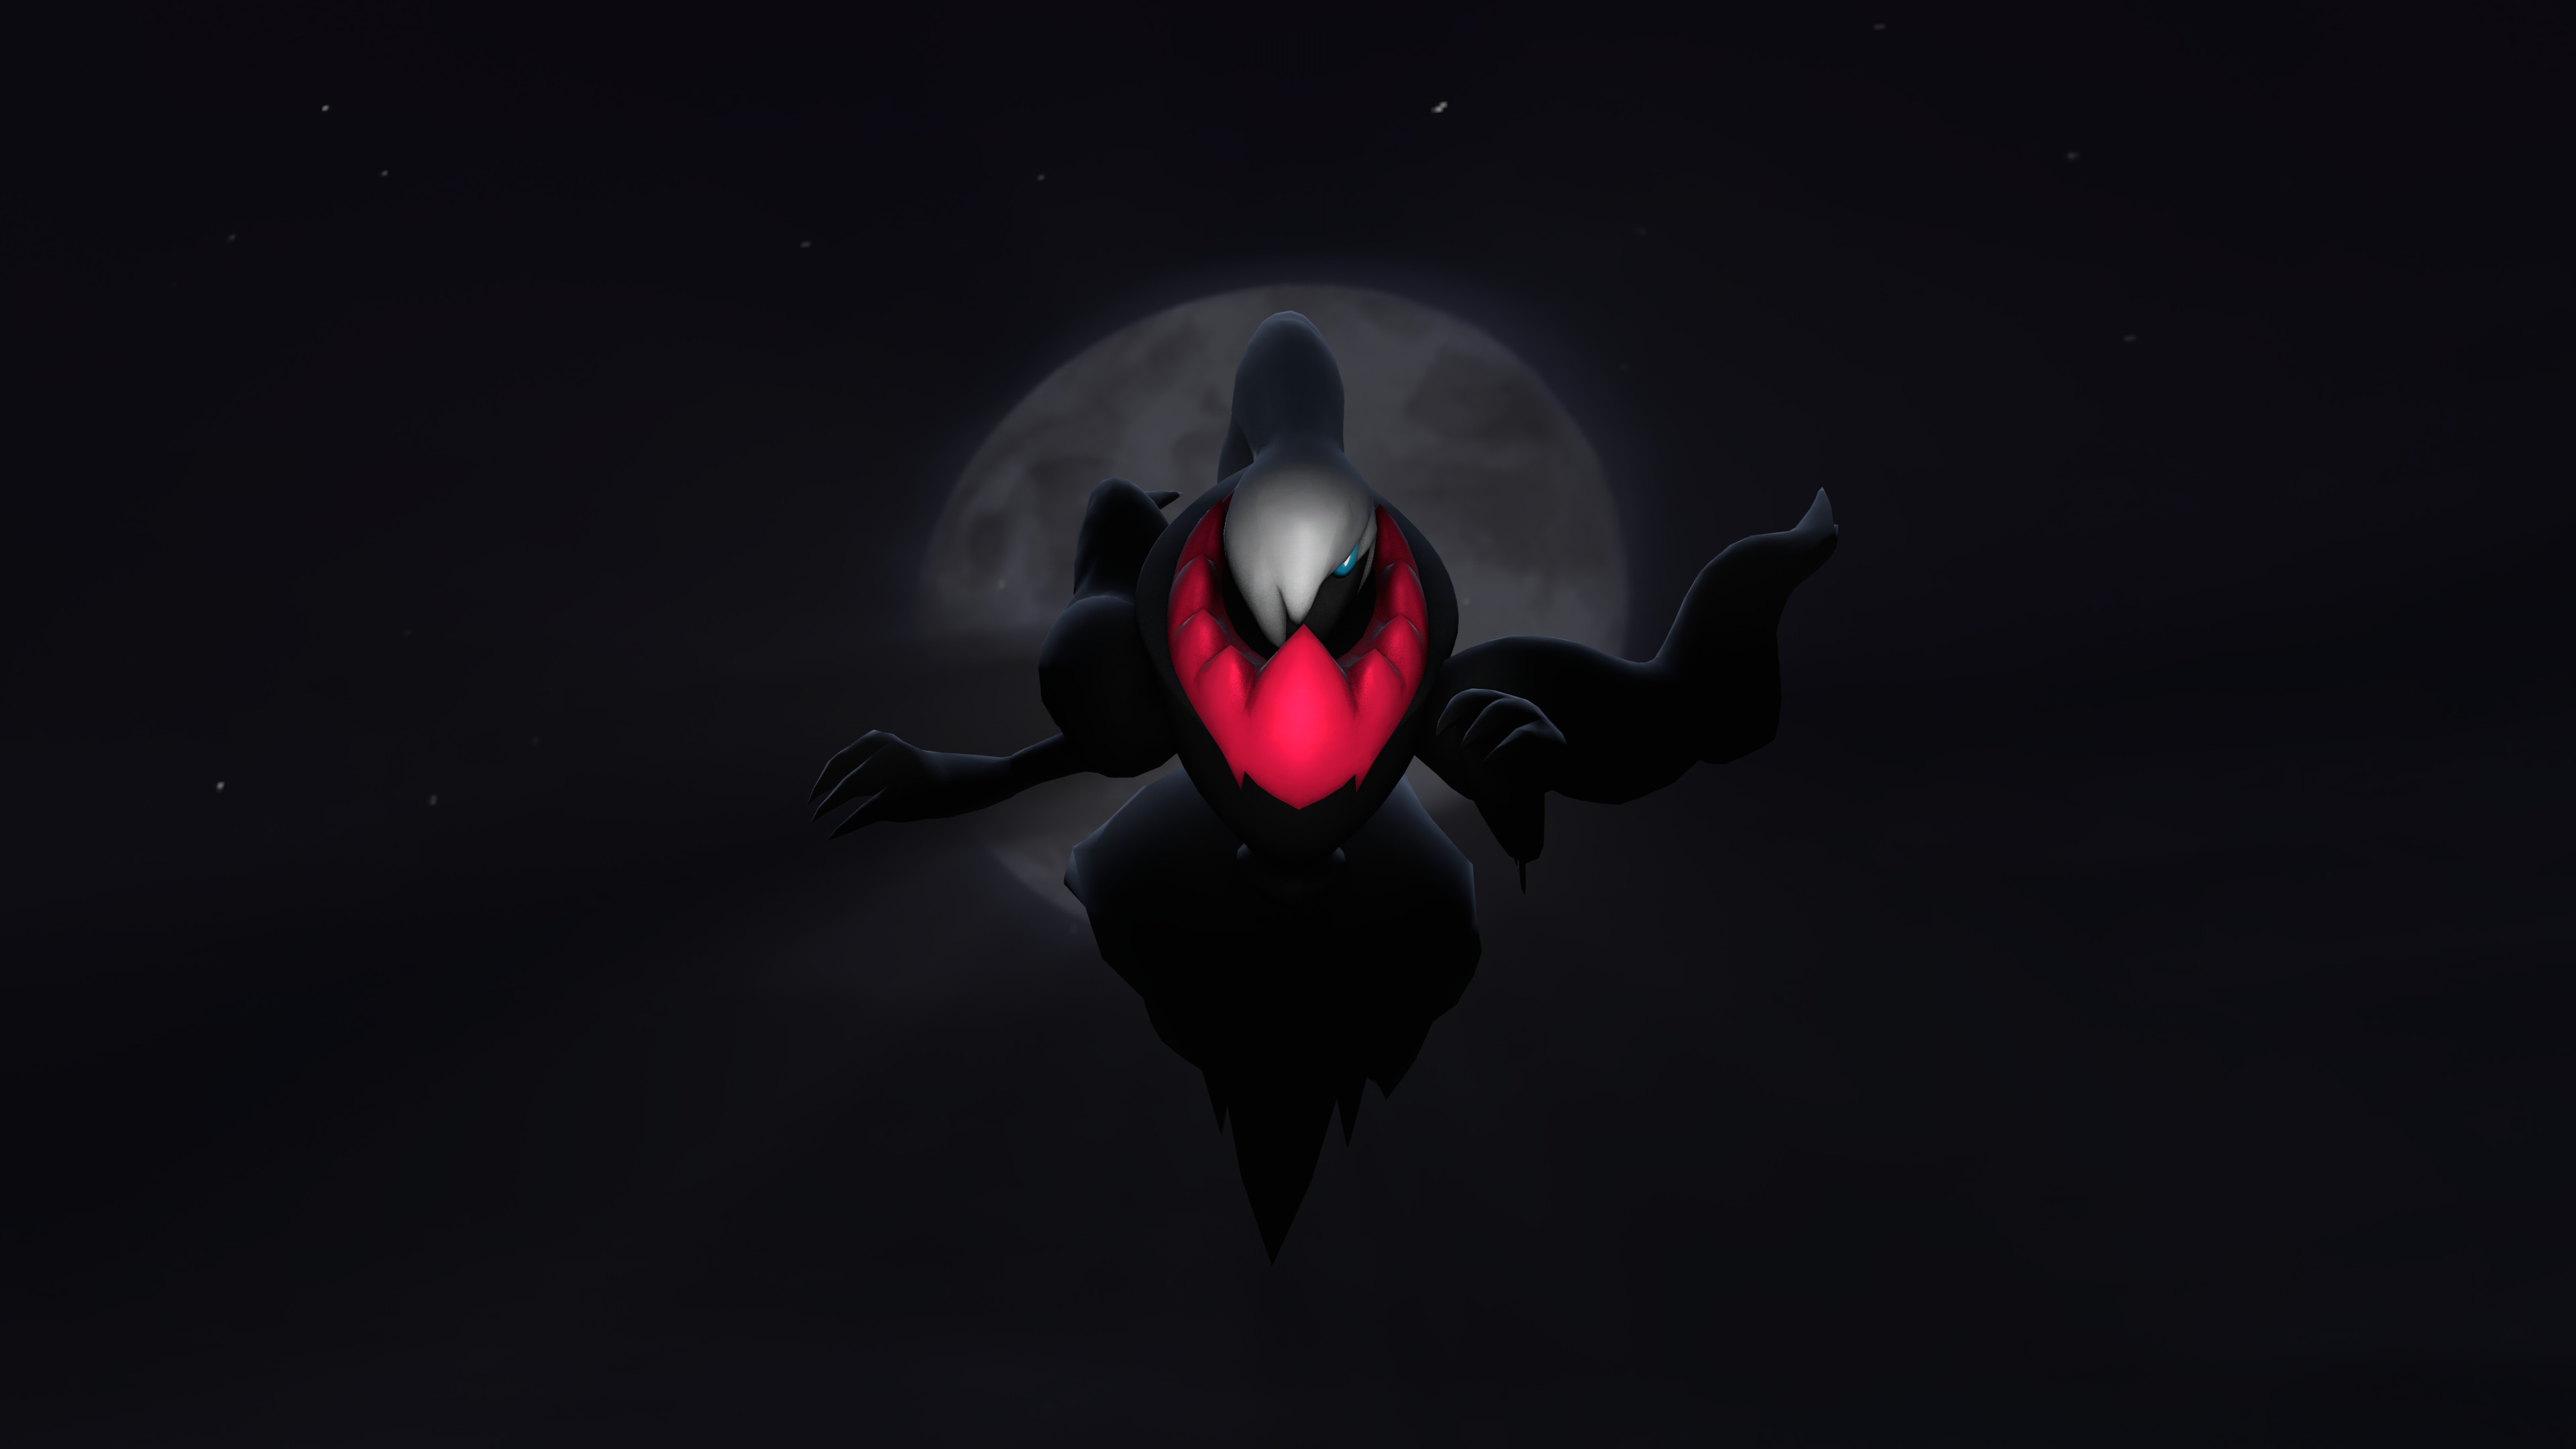 3840x2160 wallpaper.wiki--Darkrai-Wallpaper-PIC-WPB0010578